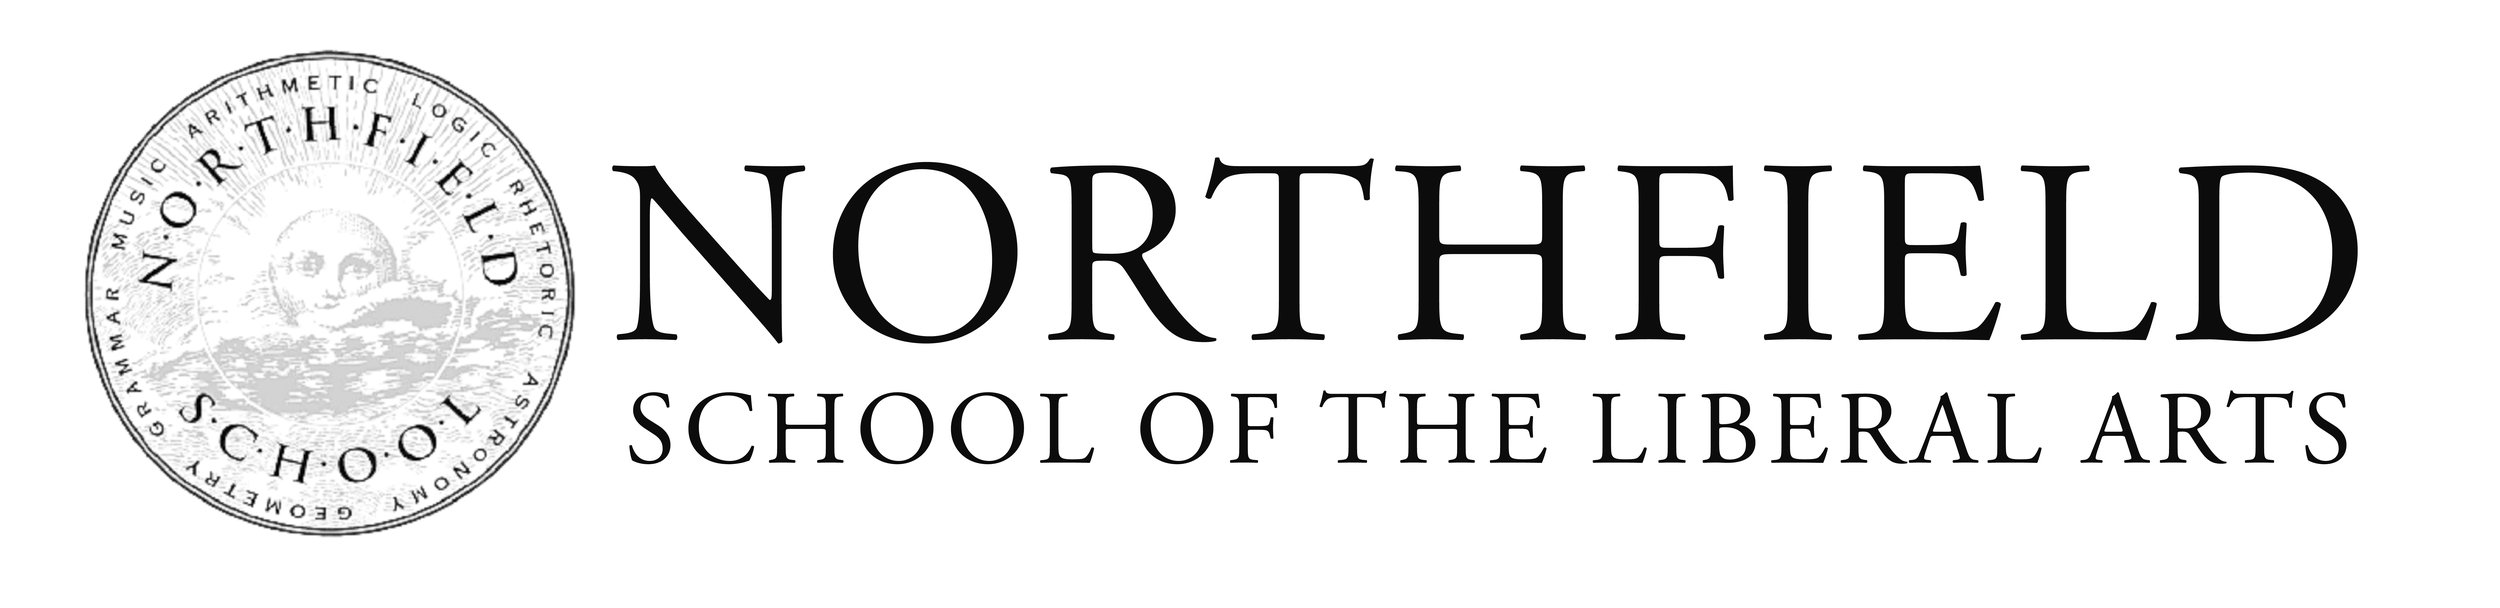 Northfield School of the Liberal Arts